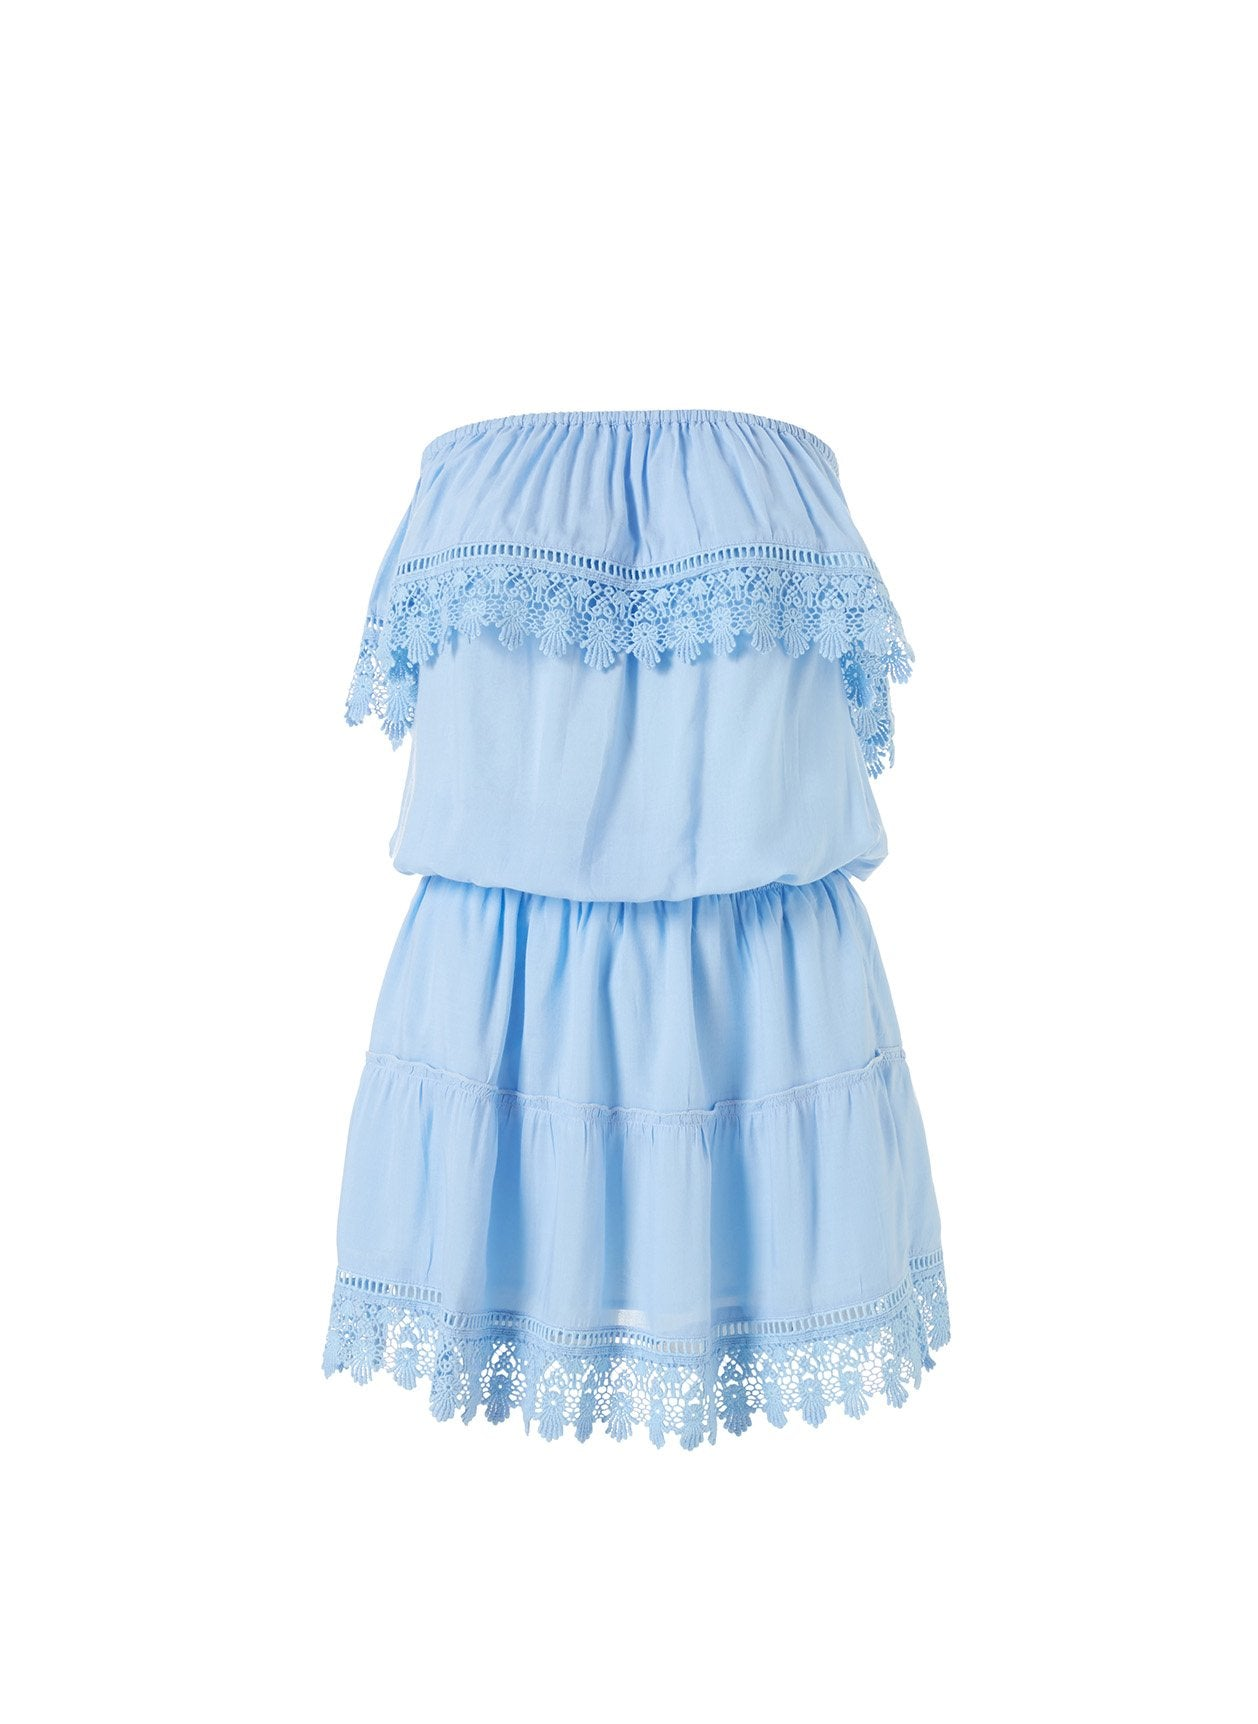 Joy Cornflower Frill Embroidered Bandeau Dress 2020